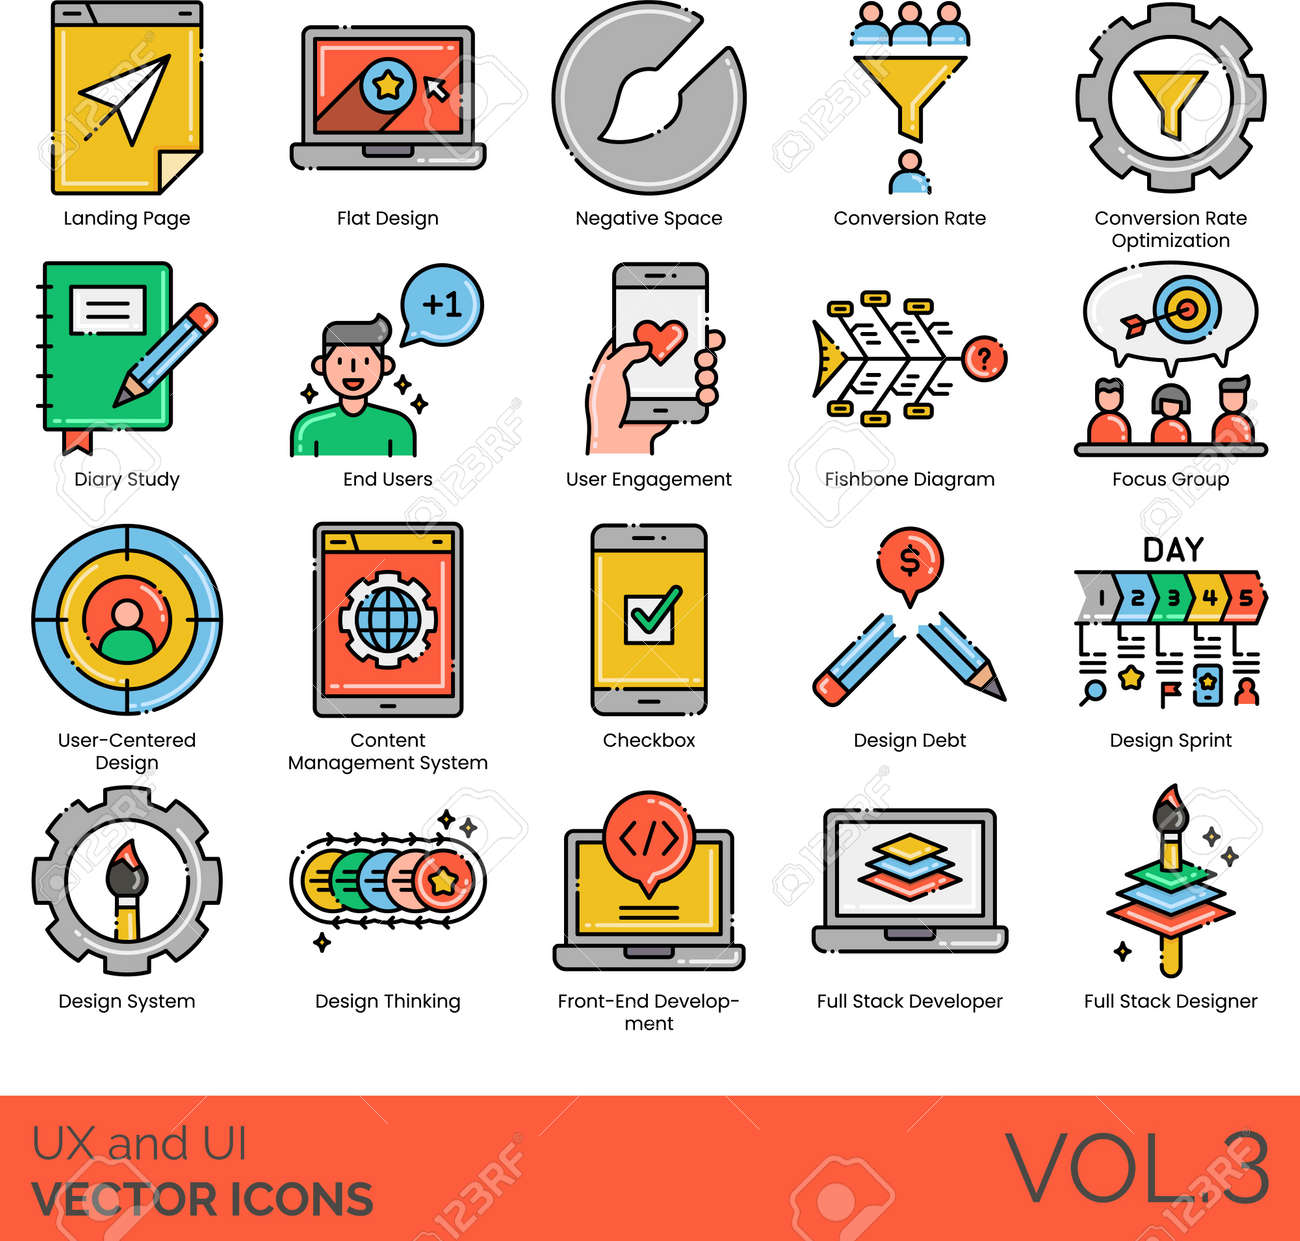 UX and UI icons including landing page, flat design, negative space, conversion rate optimization, diary study, end user, engagement, fishbone diagram, focus group, user-centered, CMS, checkbox, debt, sprint, system, thinking, front-end development, full stack developer, designer. - 147236995